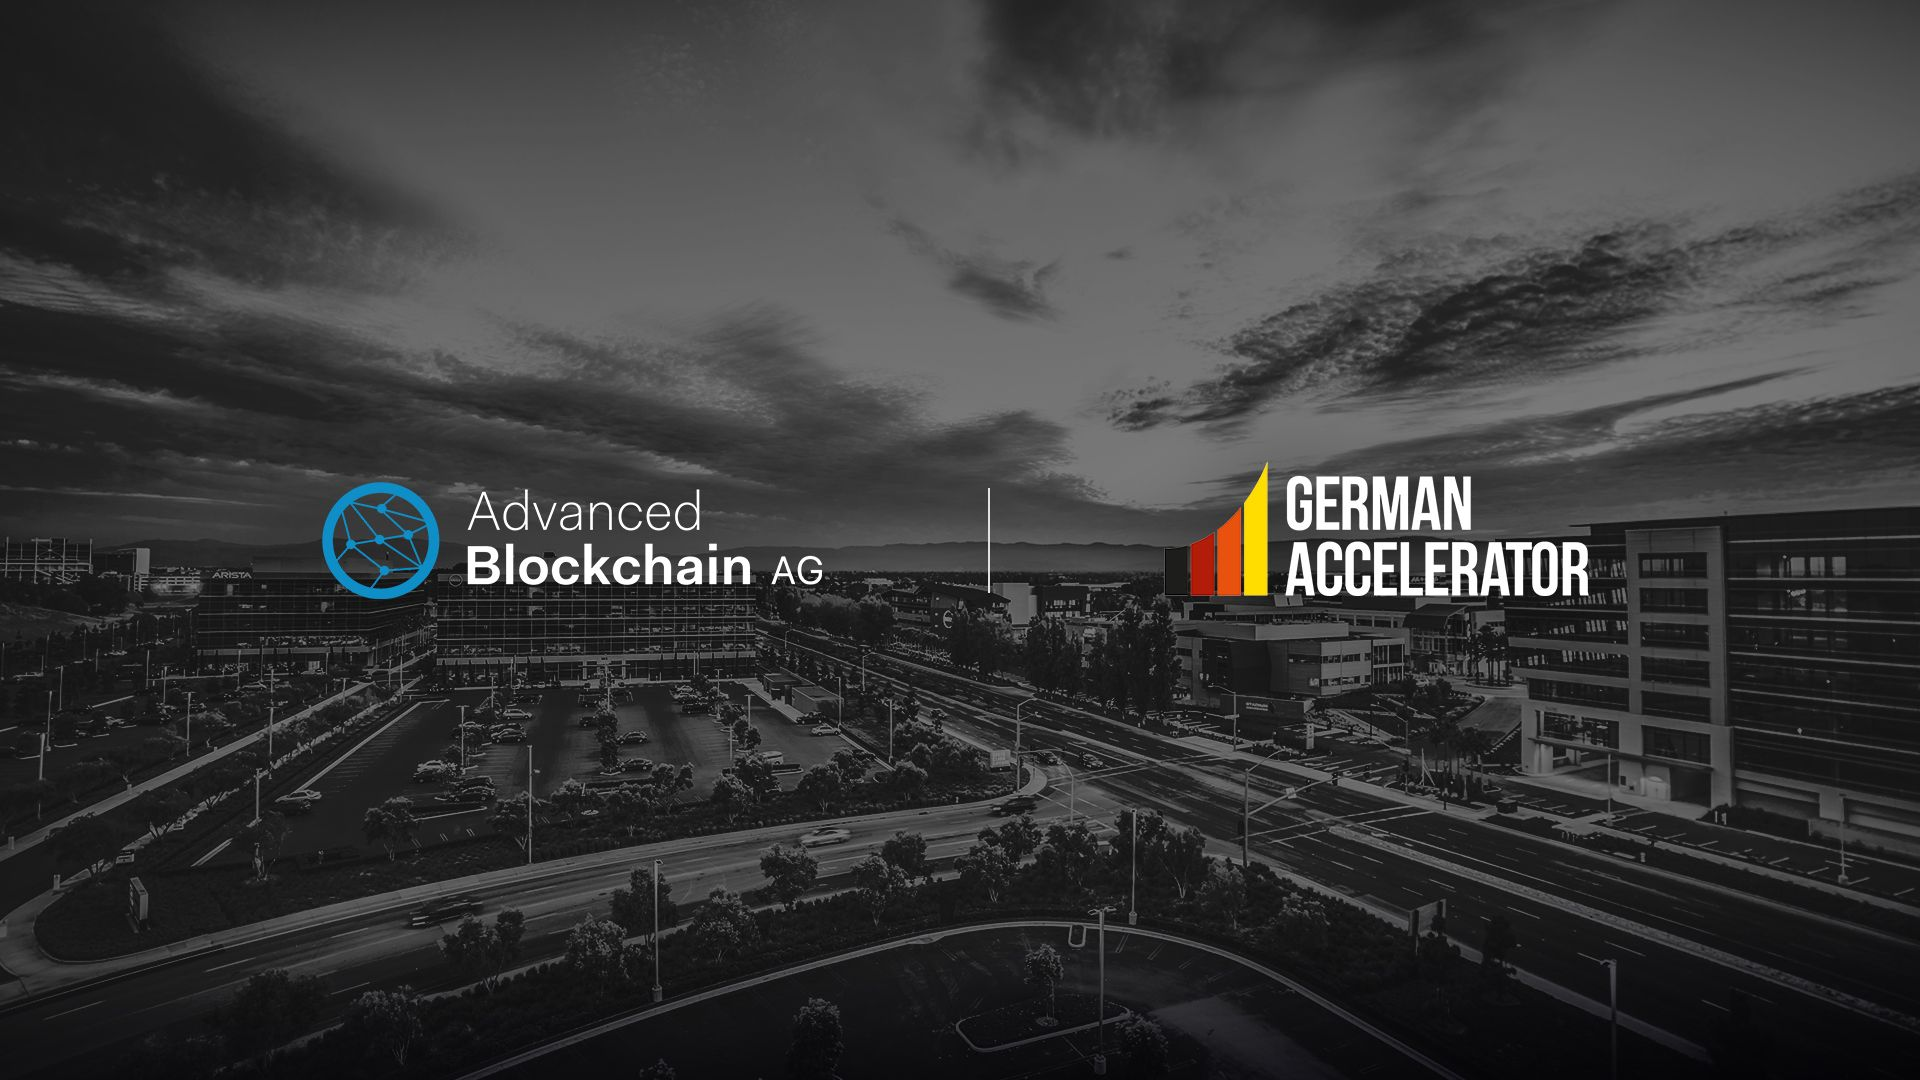 Advanced Blockchain AG selected for Silicon Valley chapter of the German Accelerator